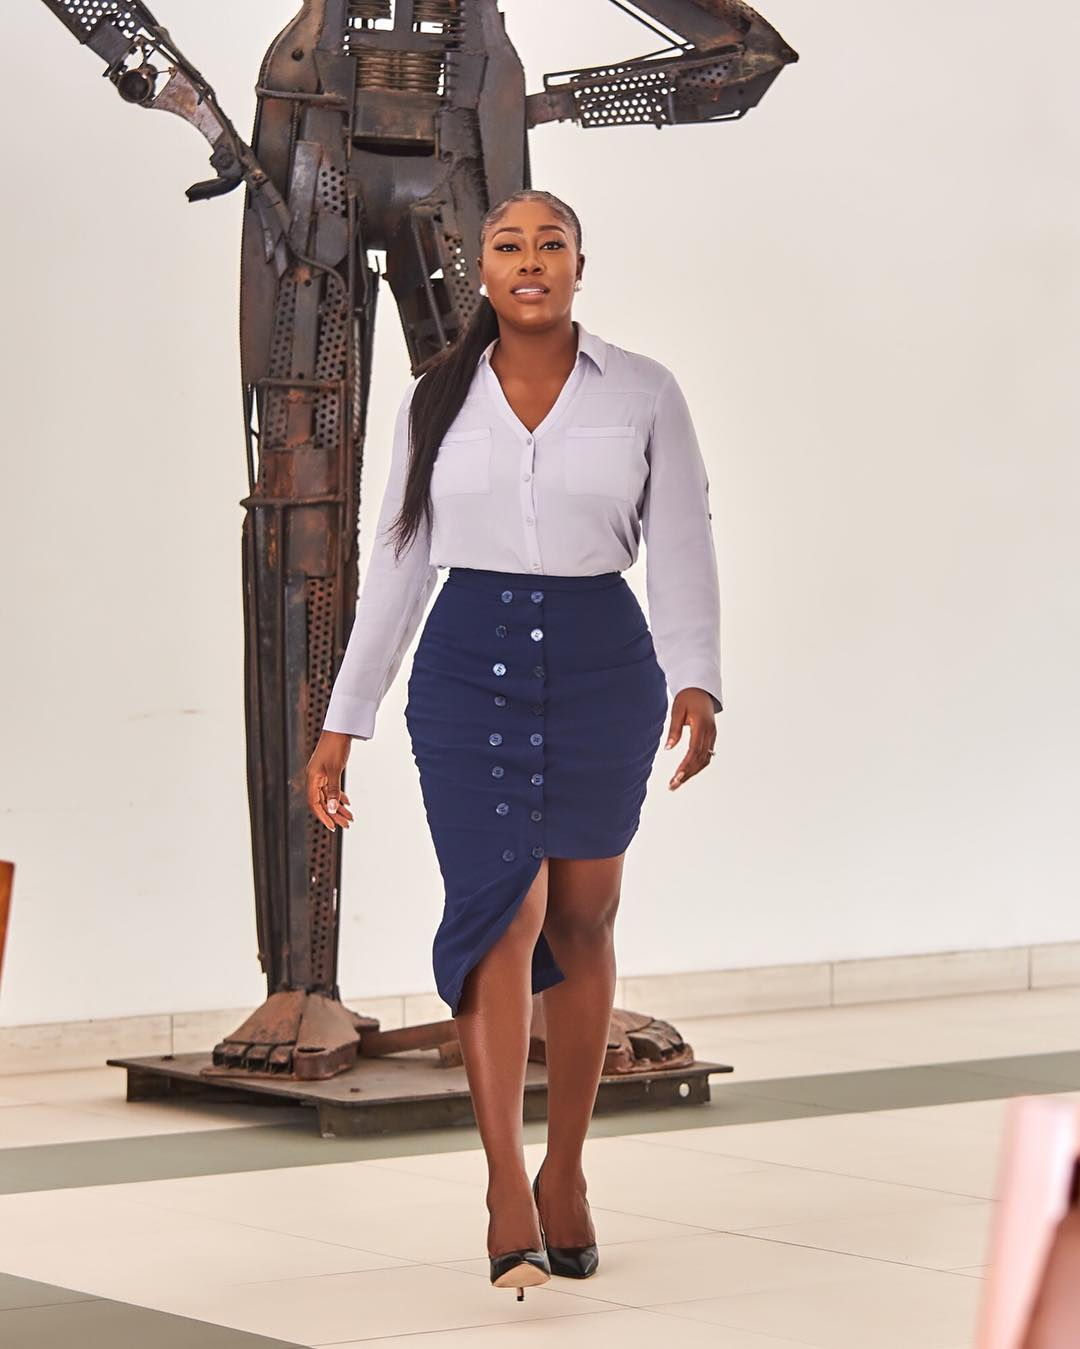 Gbemi O-O Rocks Skirt Decorated With Button